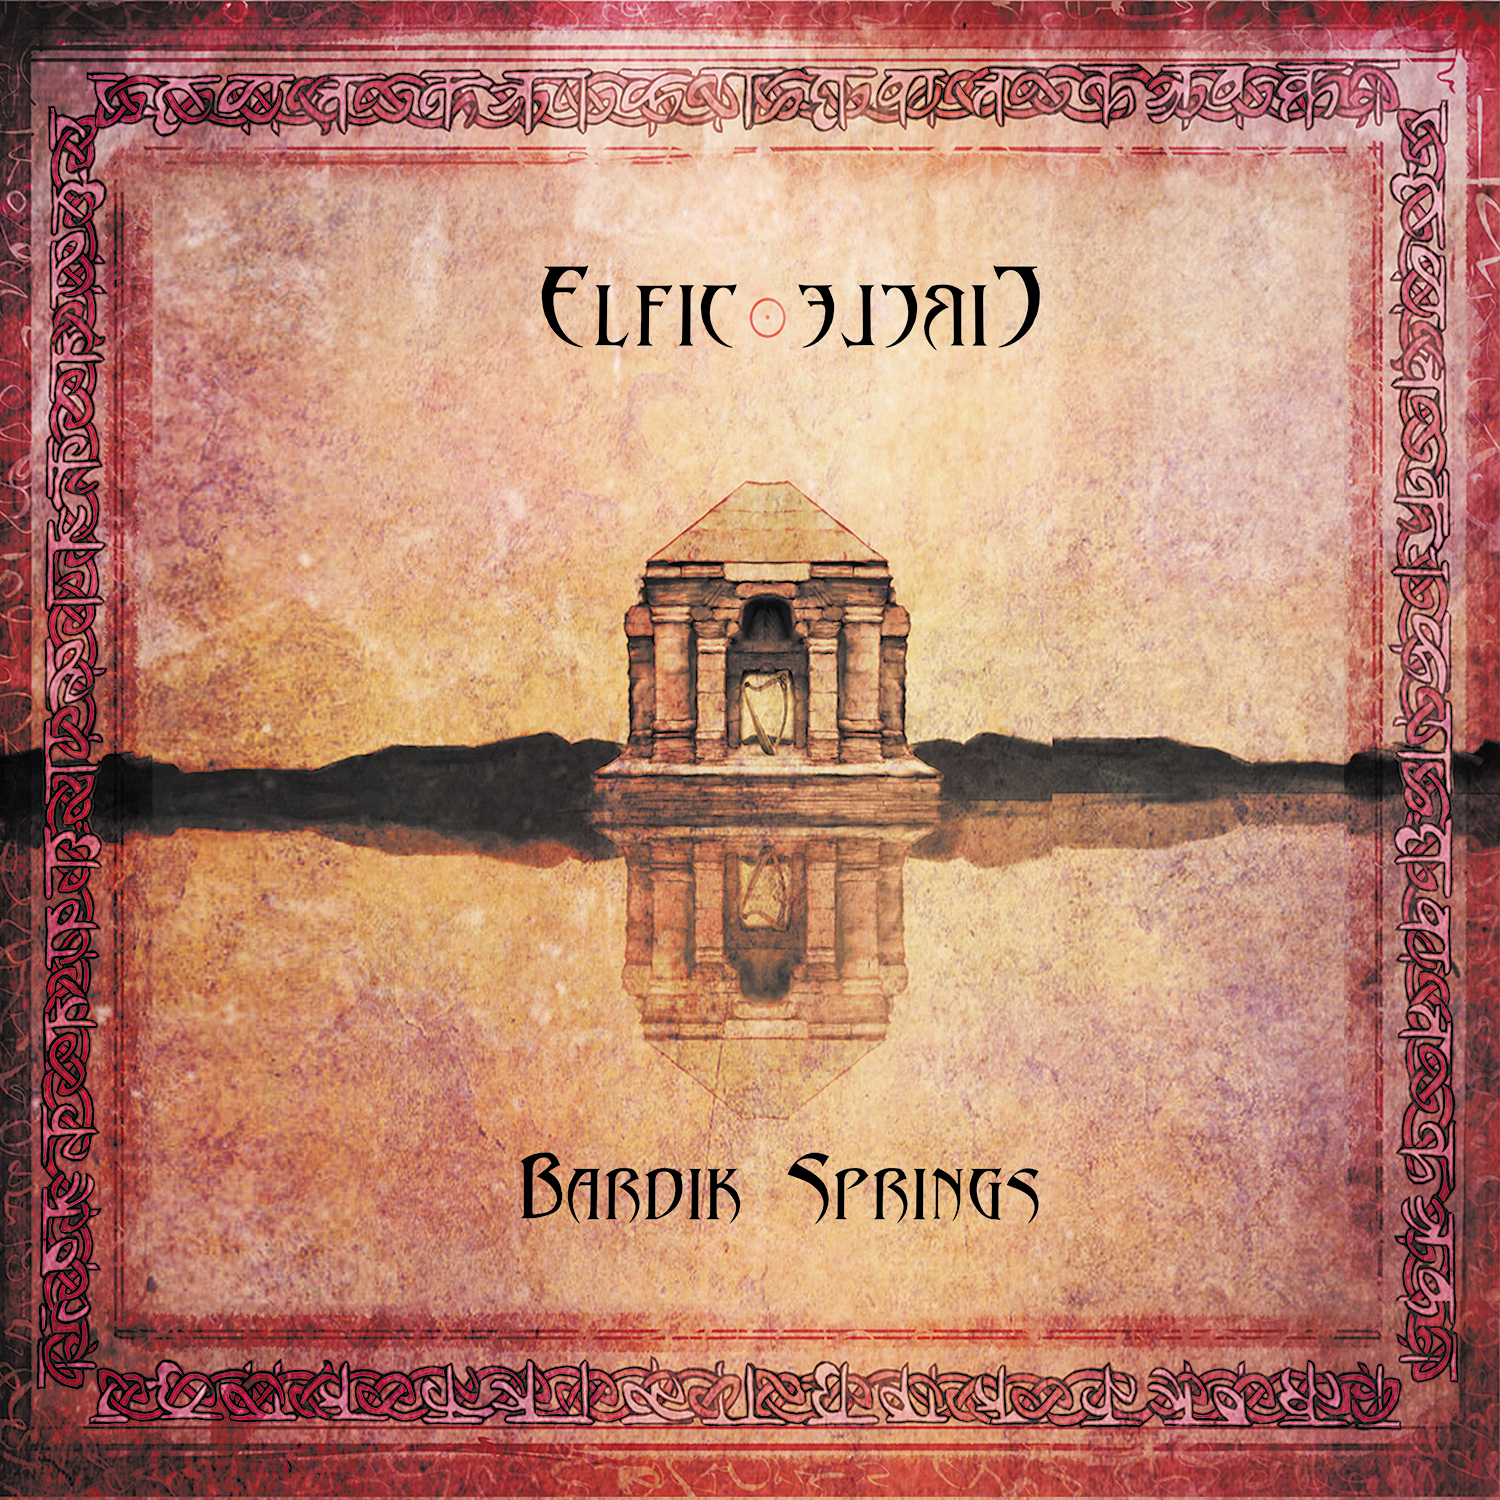 [Distribution] Elfic Circle – Bardik Springs Out Now